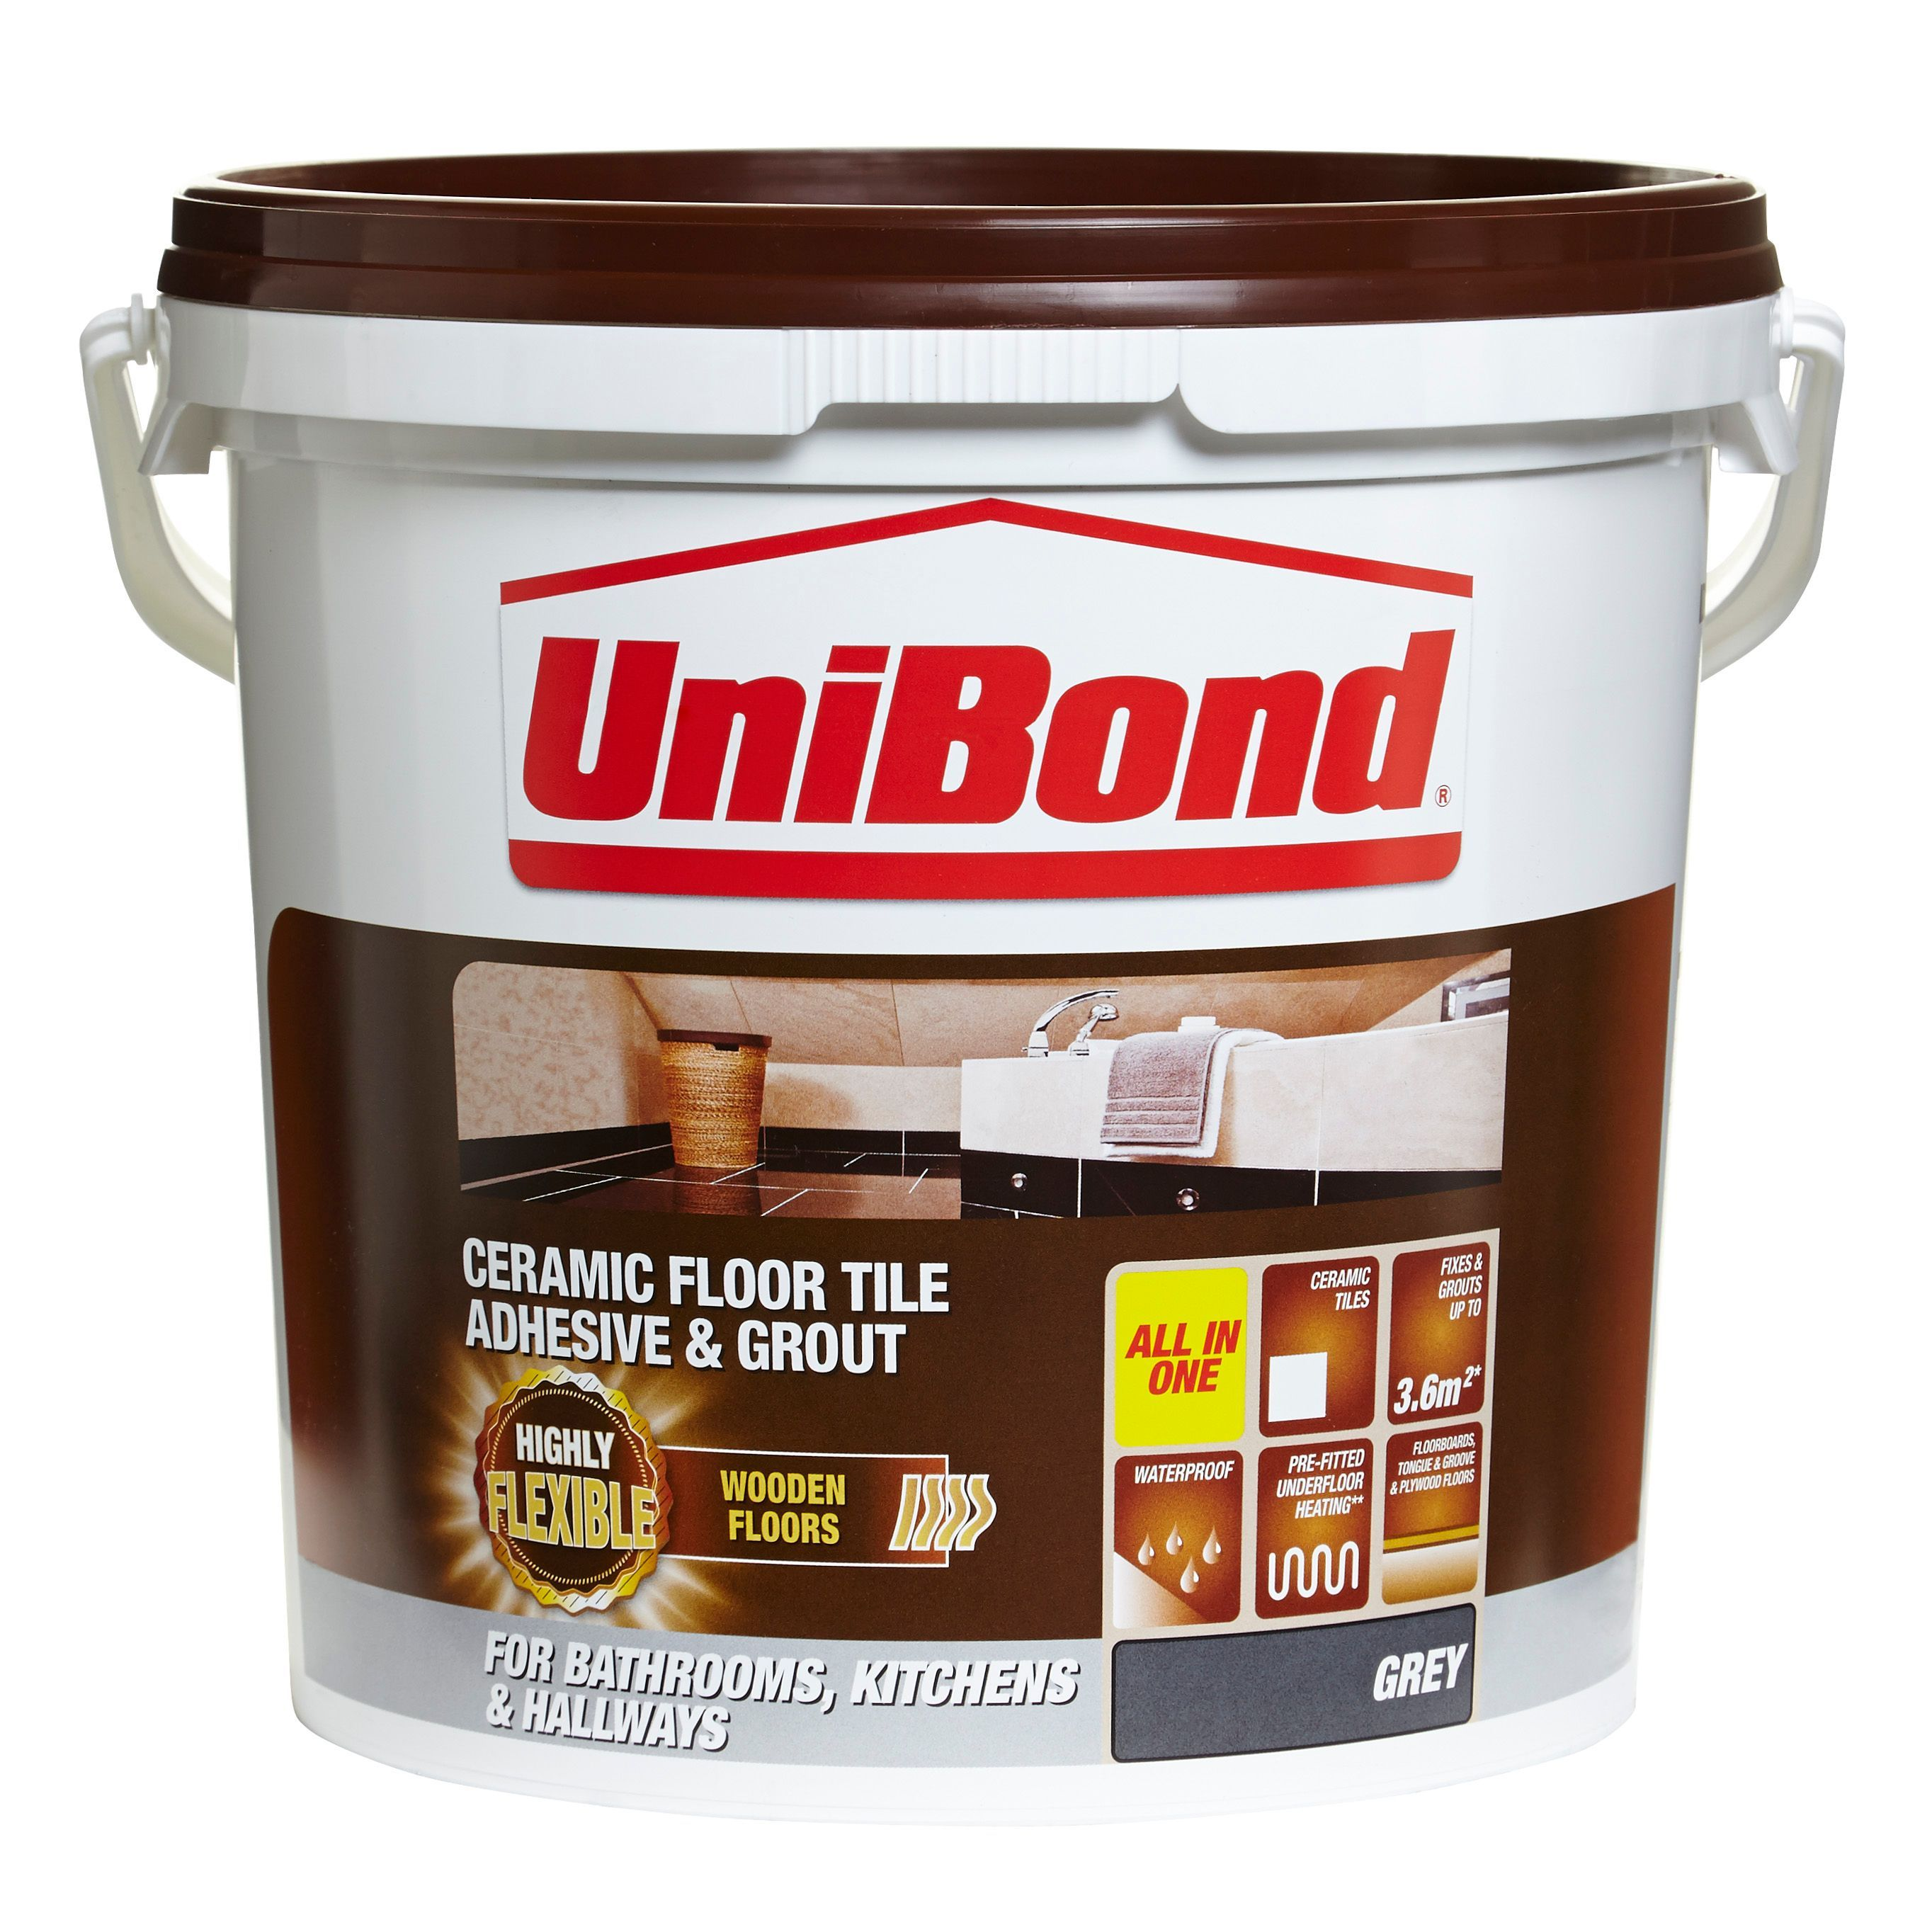 Unibond ready to use floor tile adhesive grout grey 143kg unibond ready to use floor tile adhesive grout grey 143kg dailygadgetfo Gallery